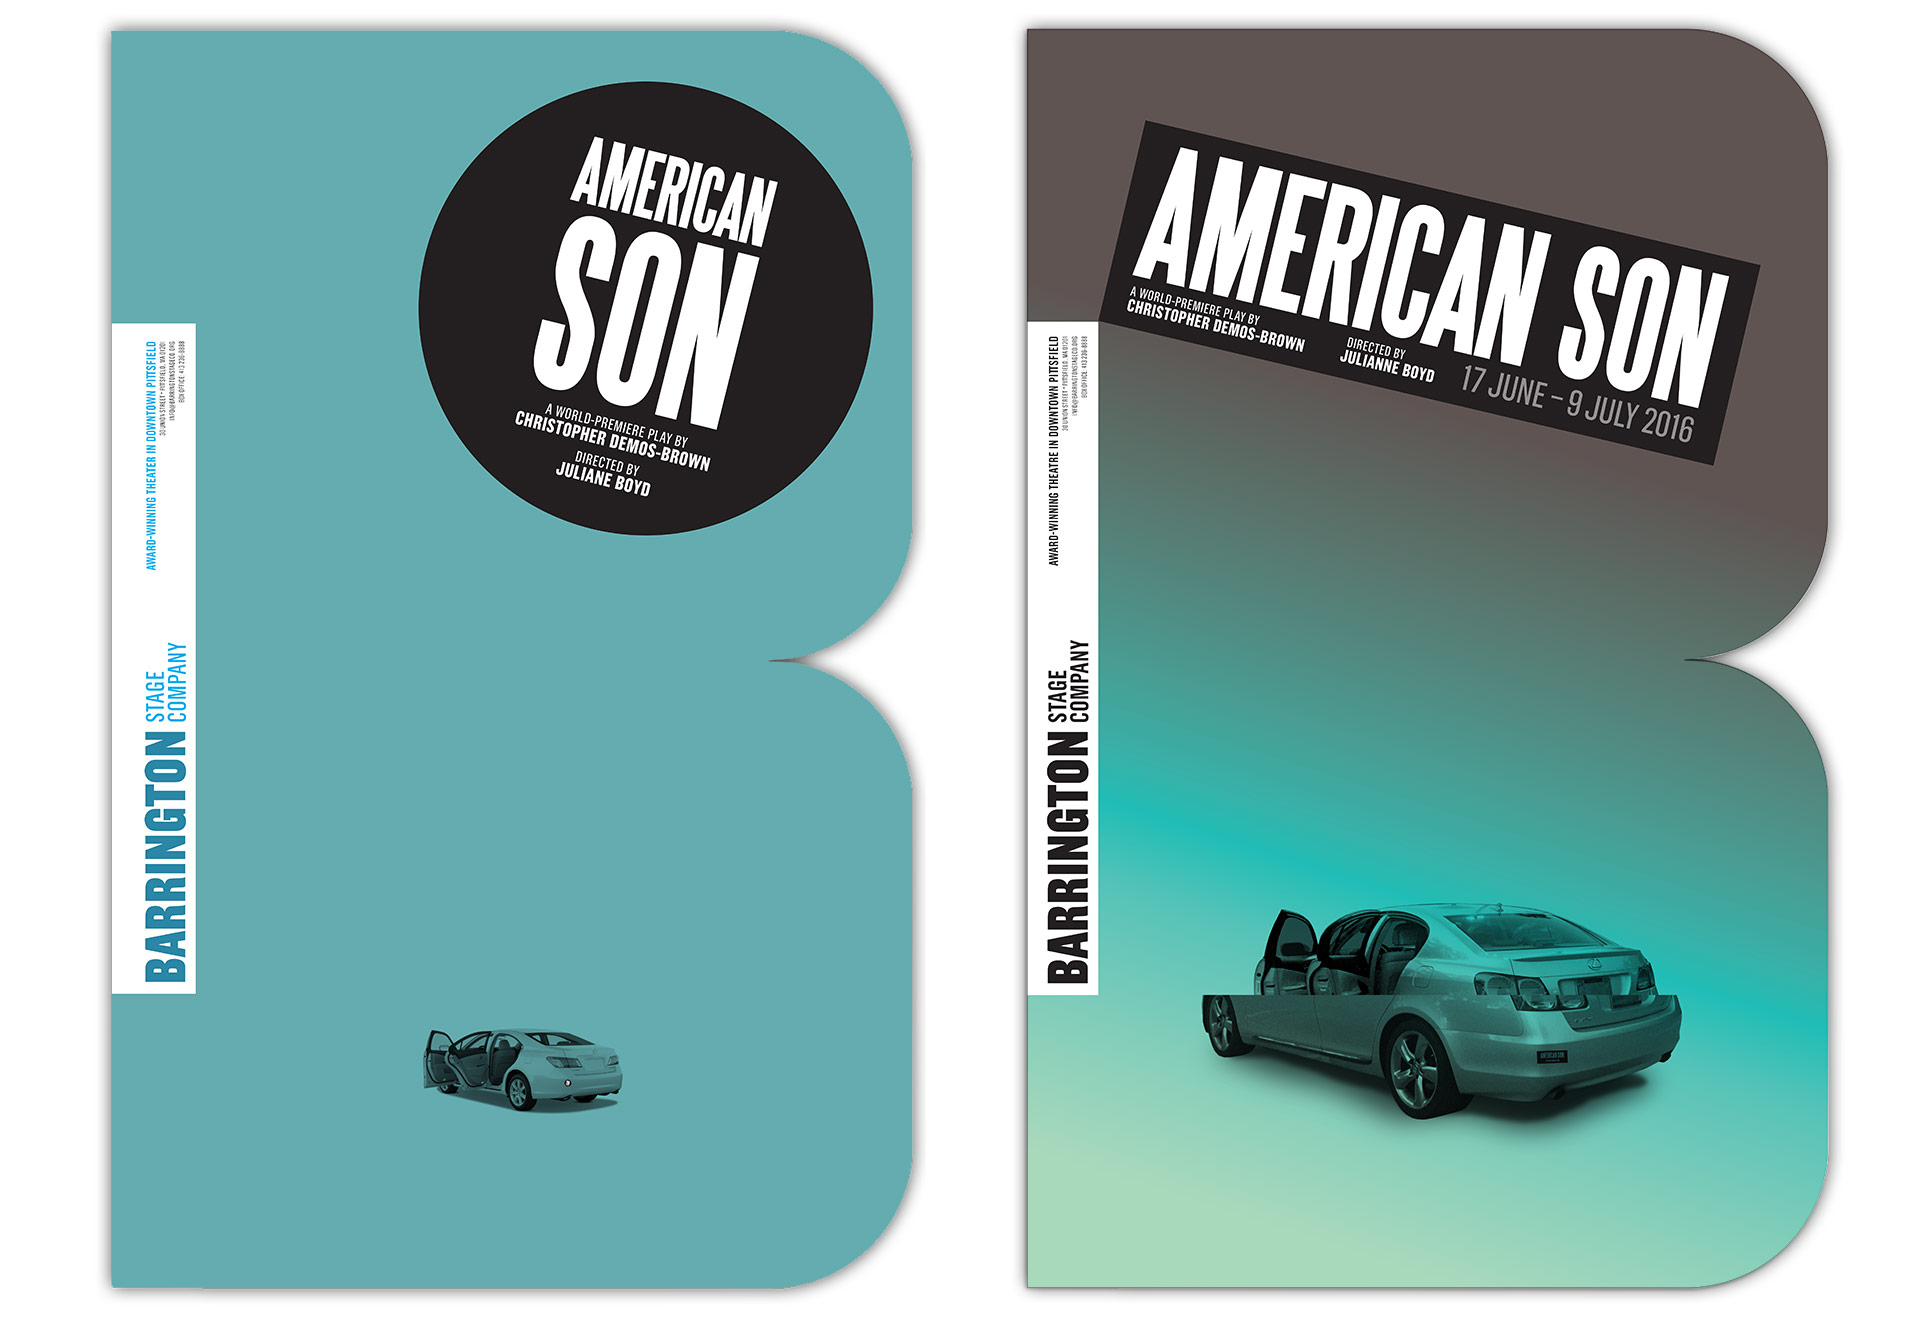 Barrington-comps-american-son-01.jpg